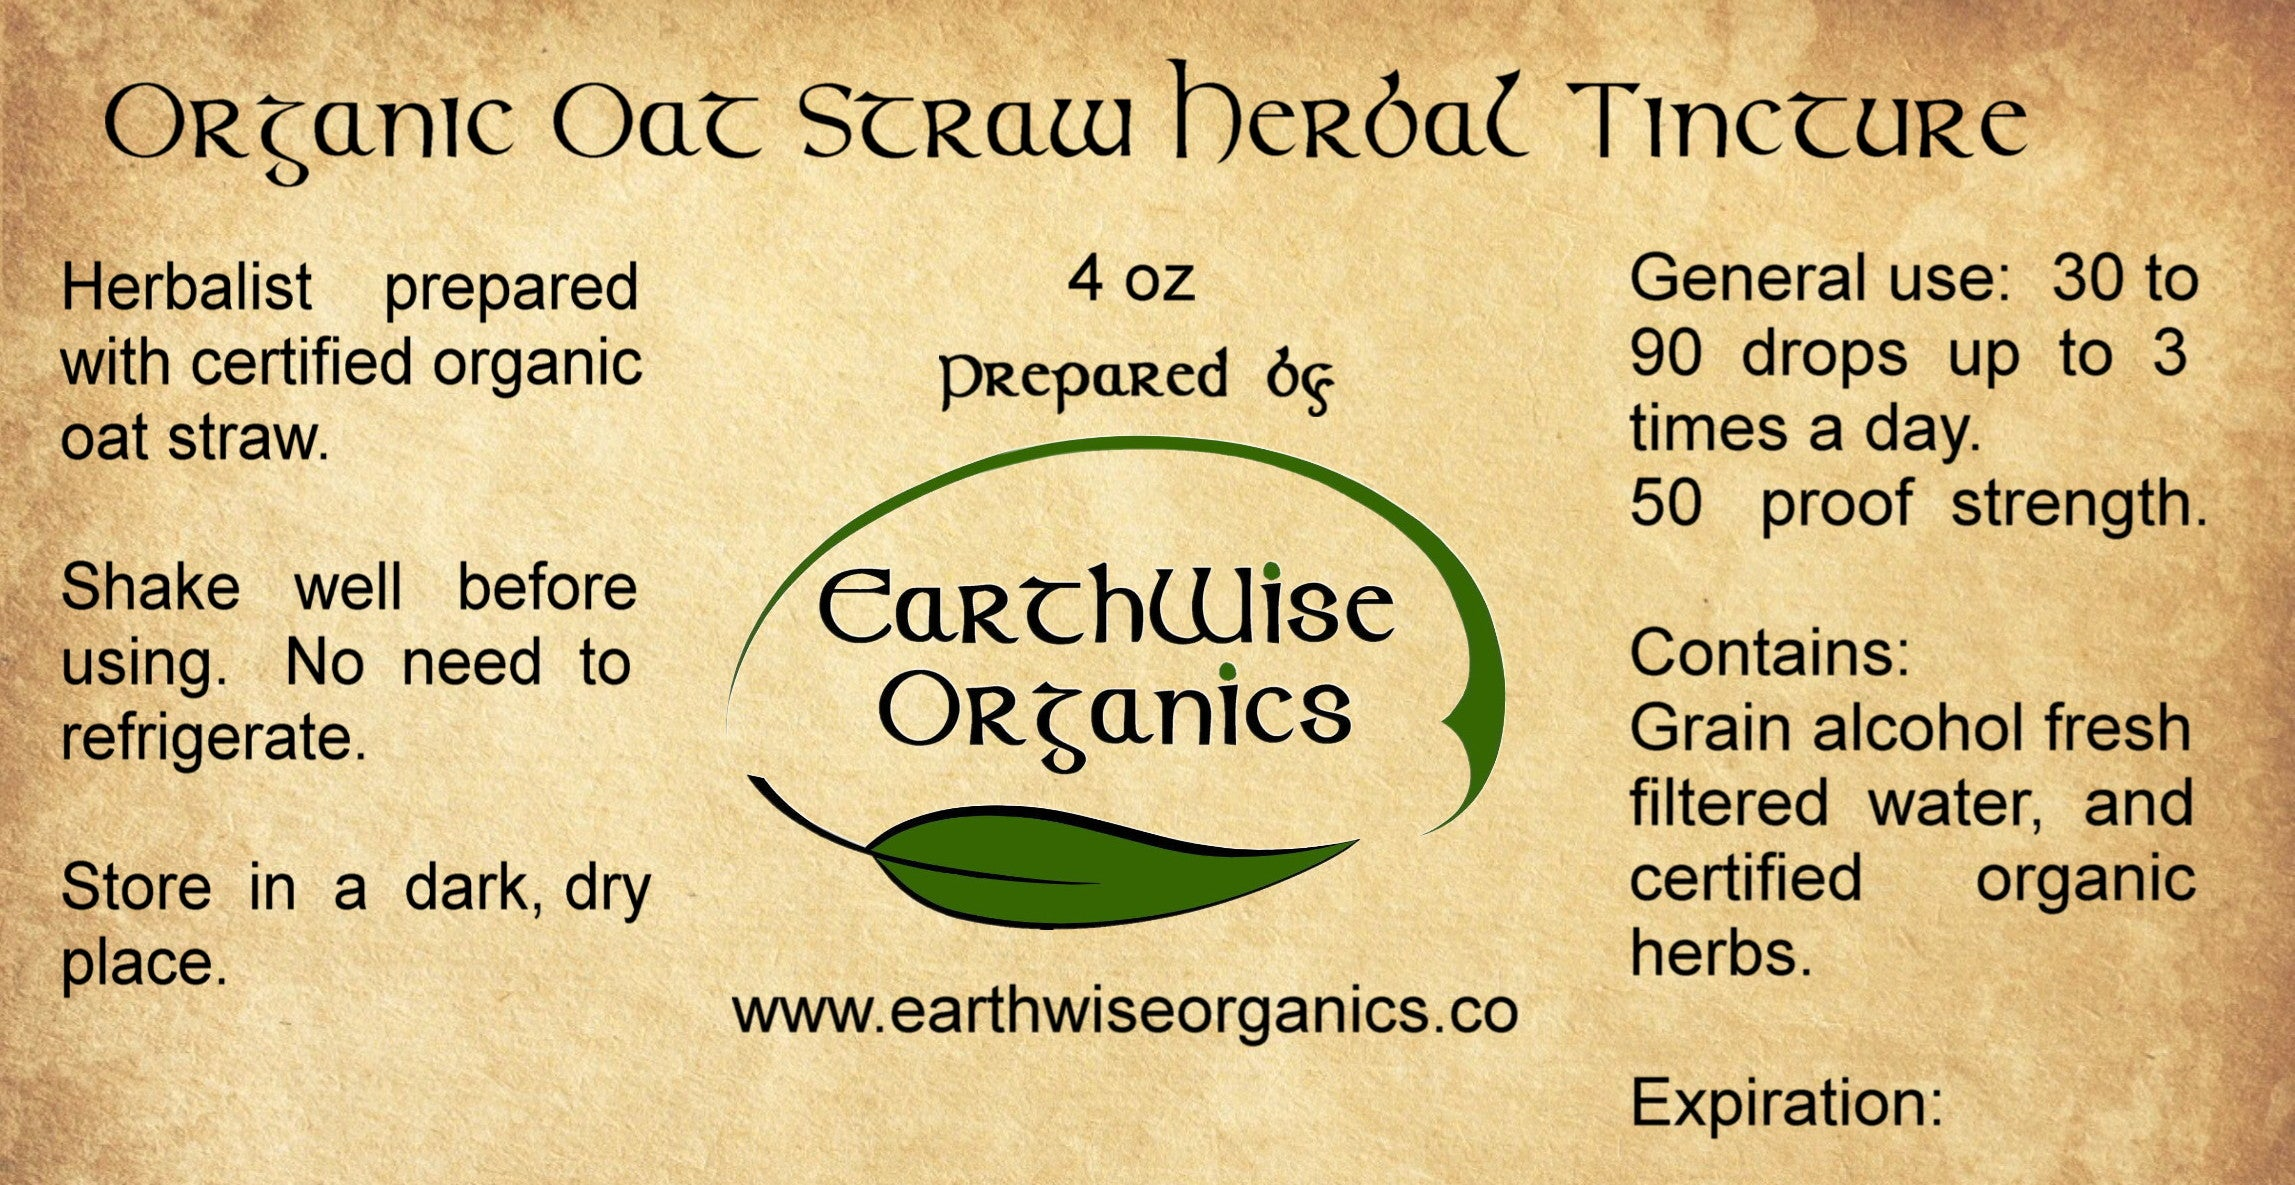 oat straw organic herbal tincture label